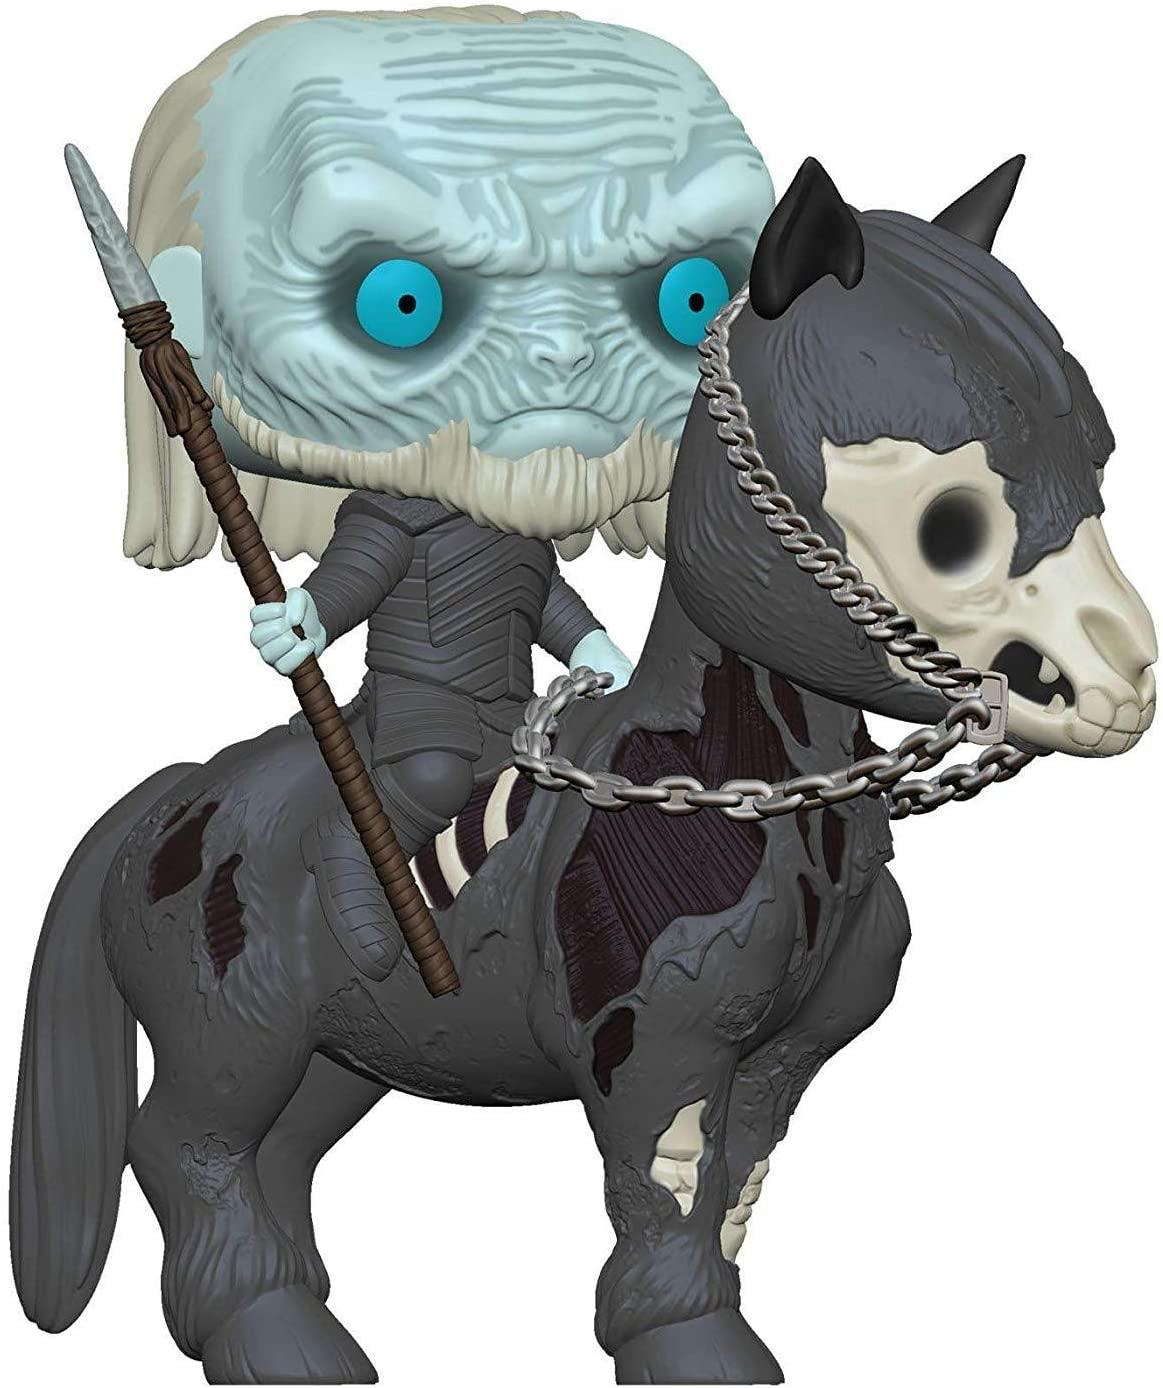 Ride personnage Game of Thrones-White Walker sur cheval Funko POP